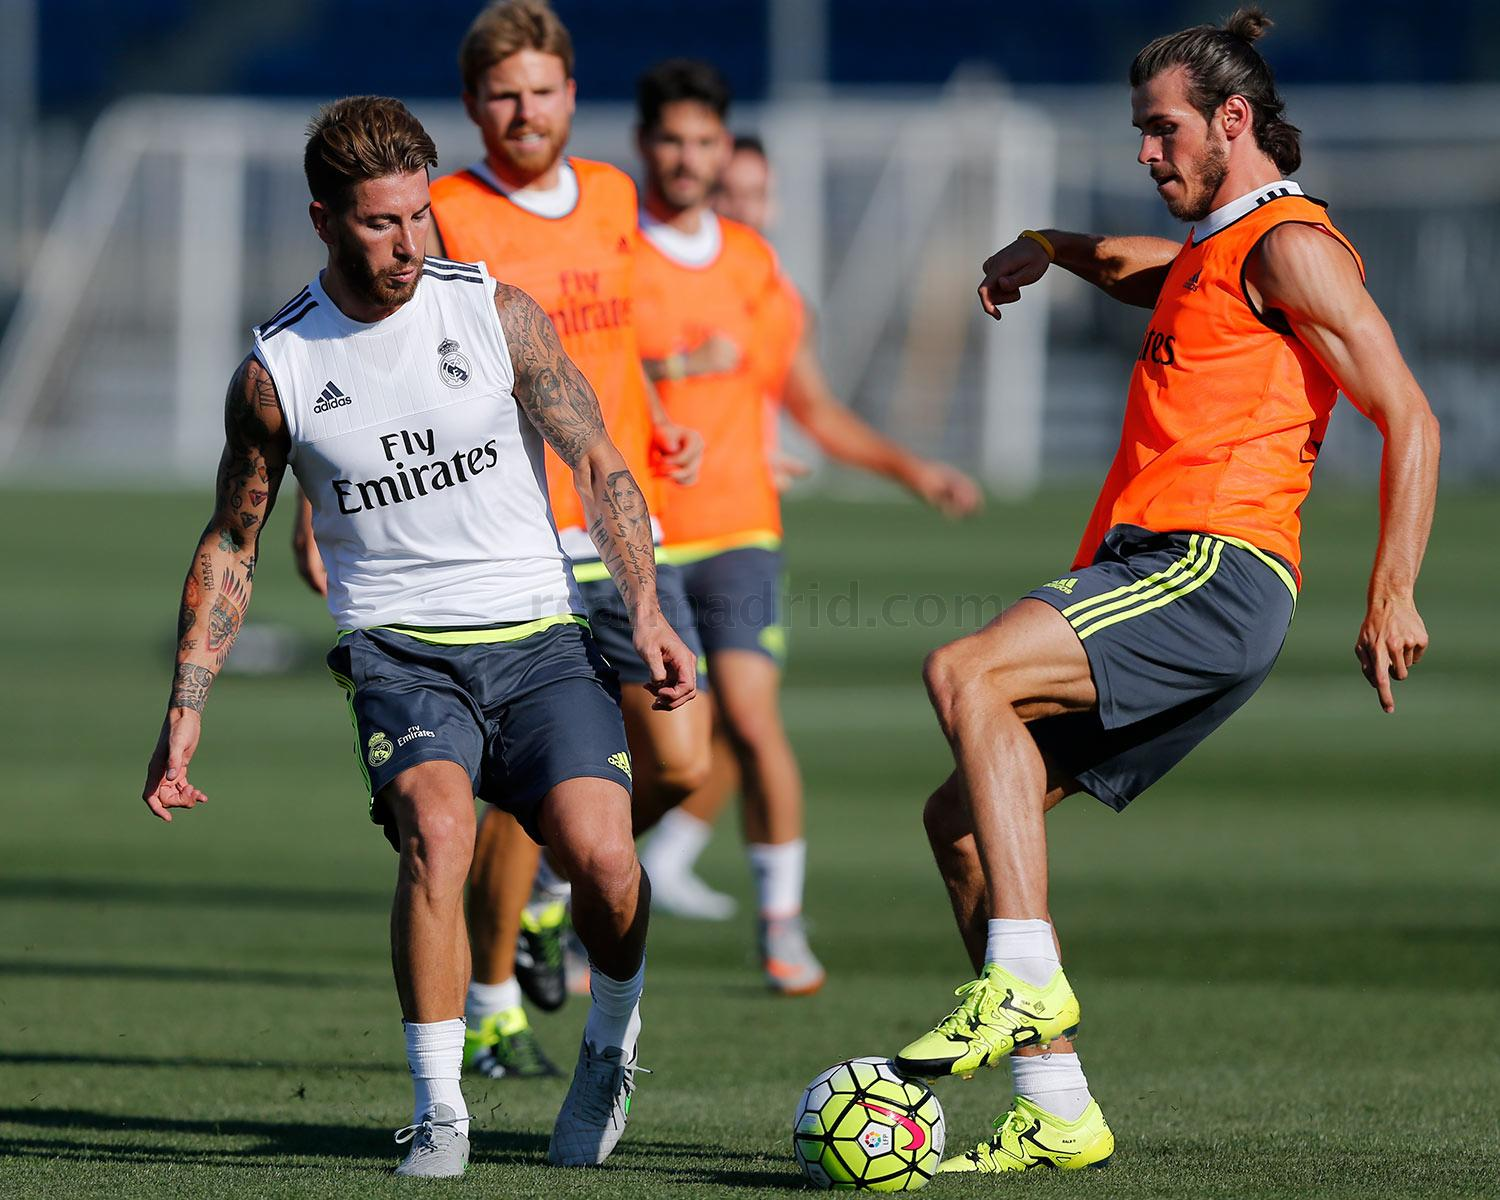 Real Madrid - Entrenamiento del Real Madrid - 11-07-2015